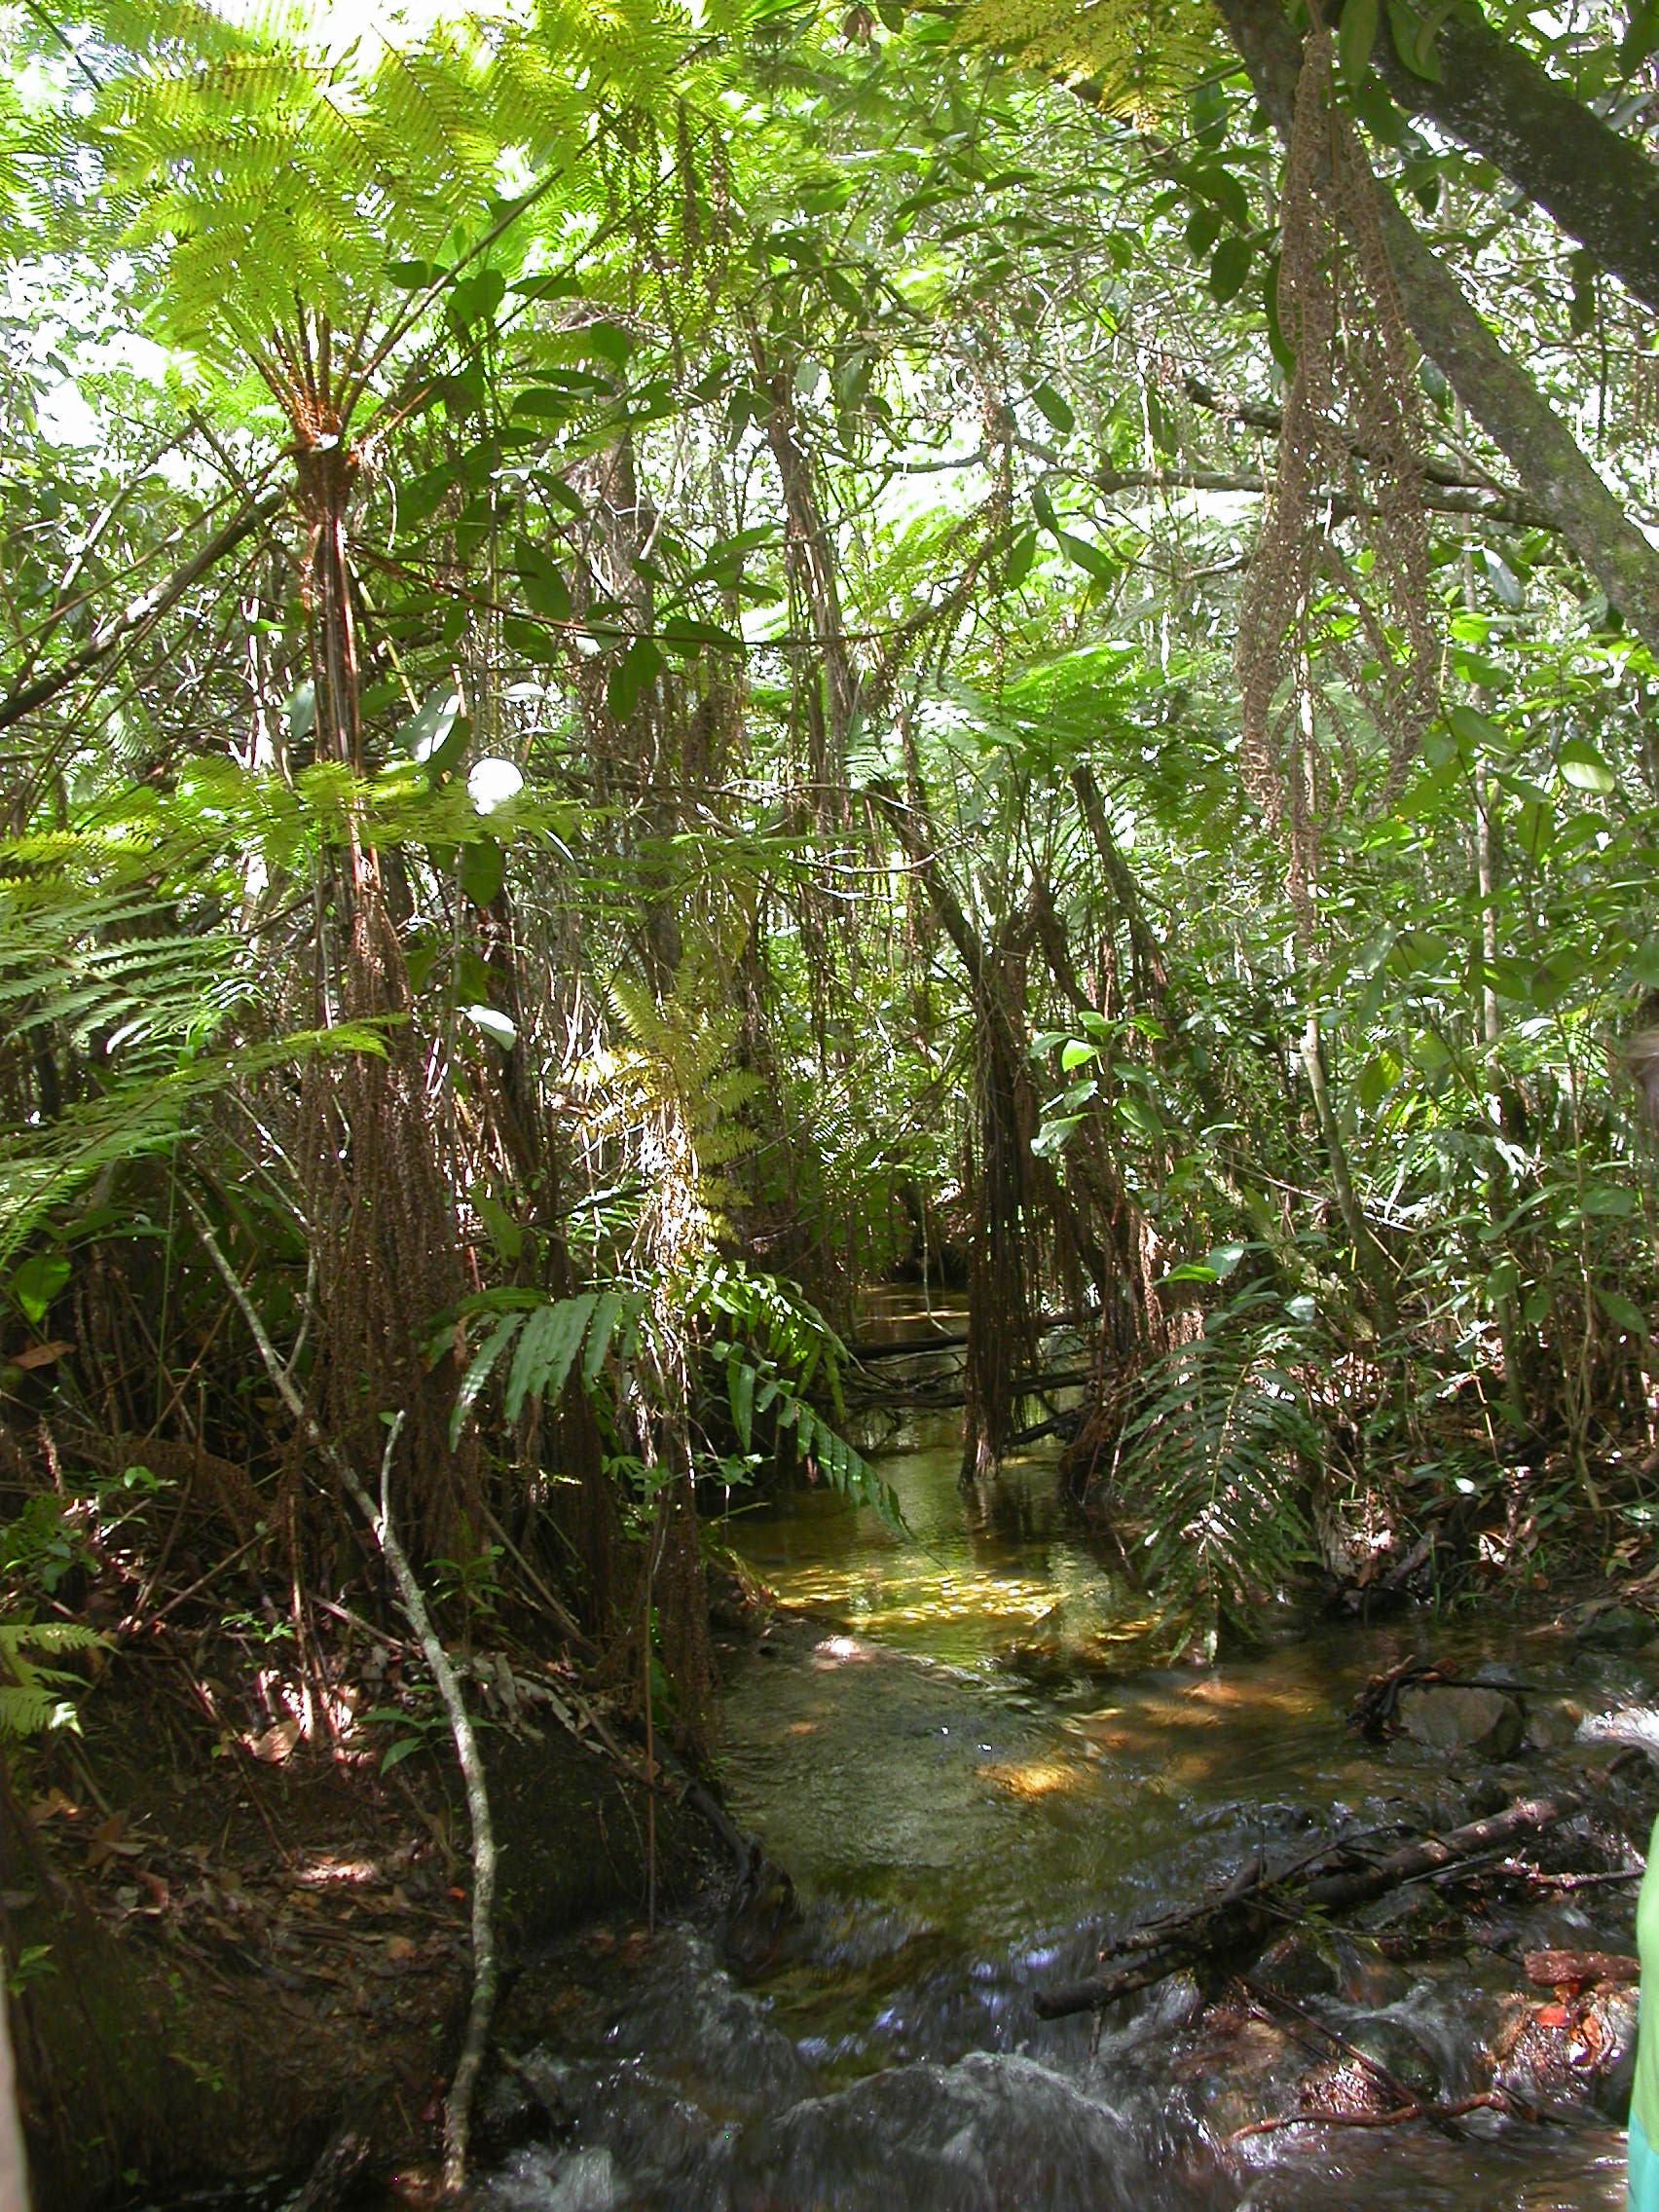 Photo 3: A view of a gallery forest, this type of habitat is associated to streams and illustrates a type of forest habitat where interactions among plants and hummingbirds are phenotypically more specialized (photo credit: Anna Abrahão; from Parque Nacional de Águas Emendadas).